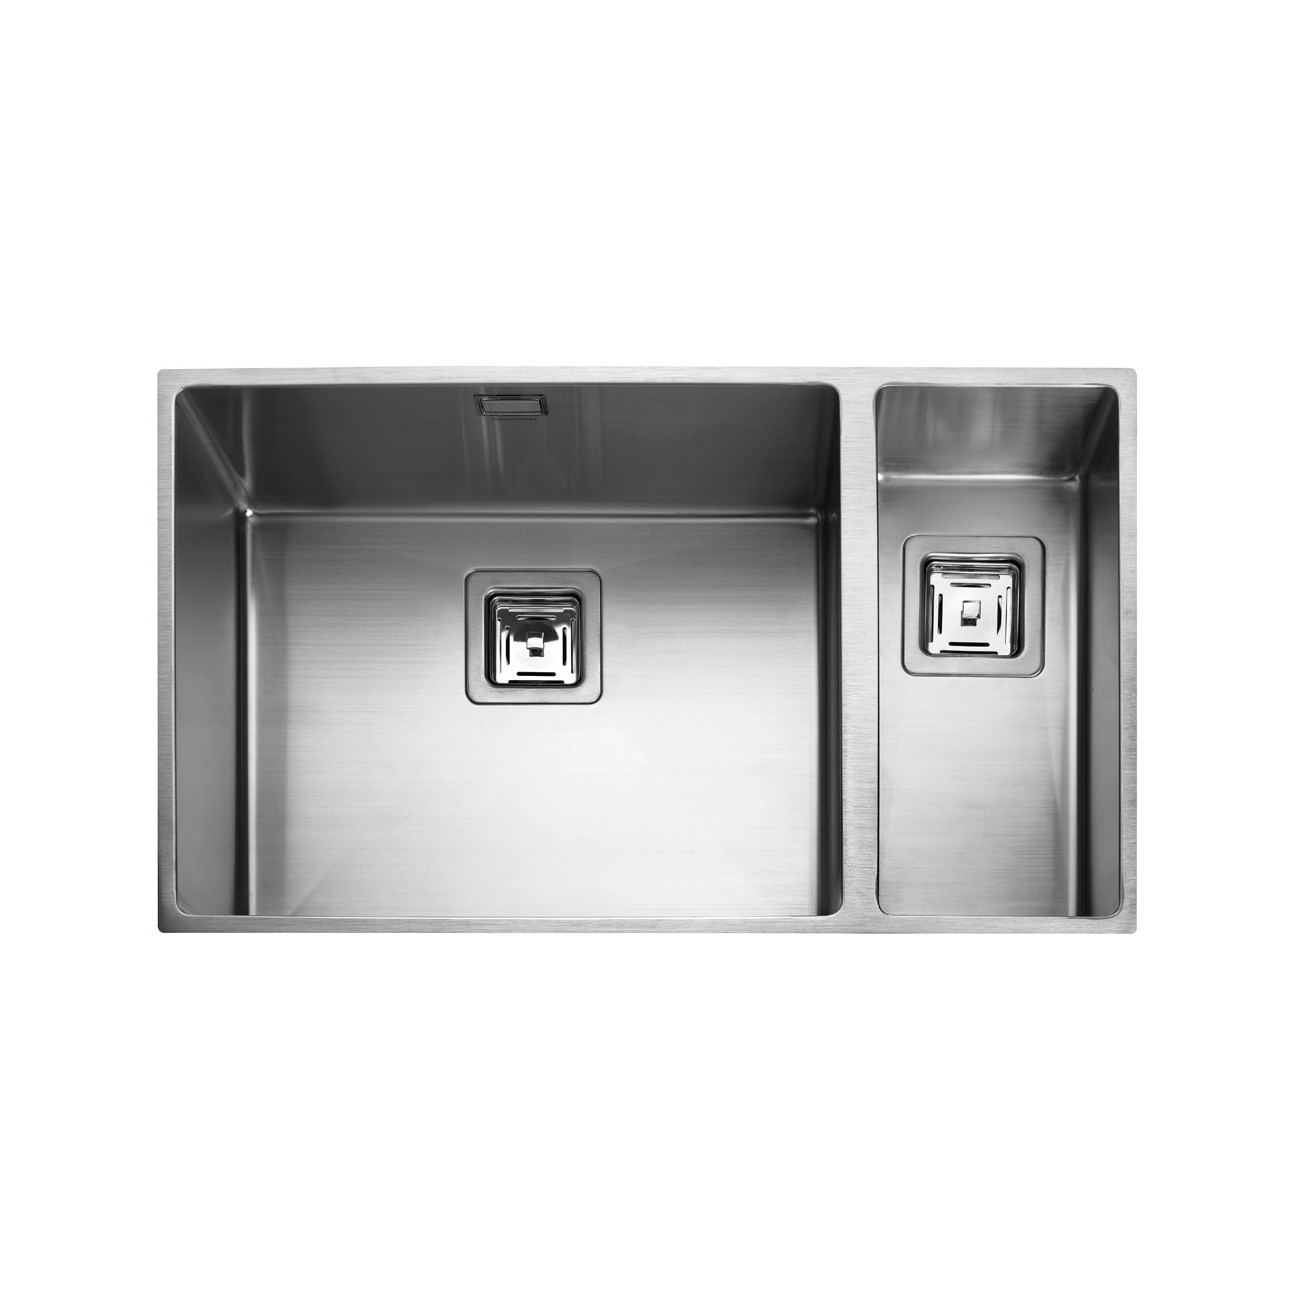 Rangemaster Kube KUB5018R/ 1.5 Bowl Undermount Sink Right